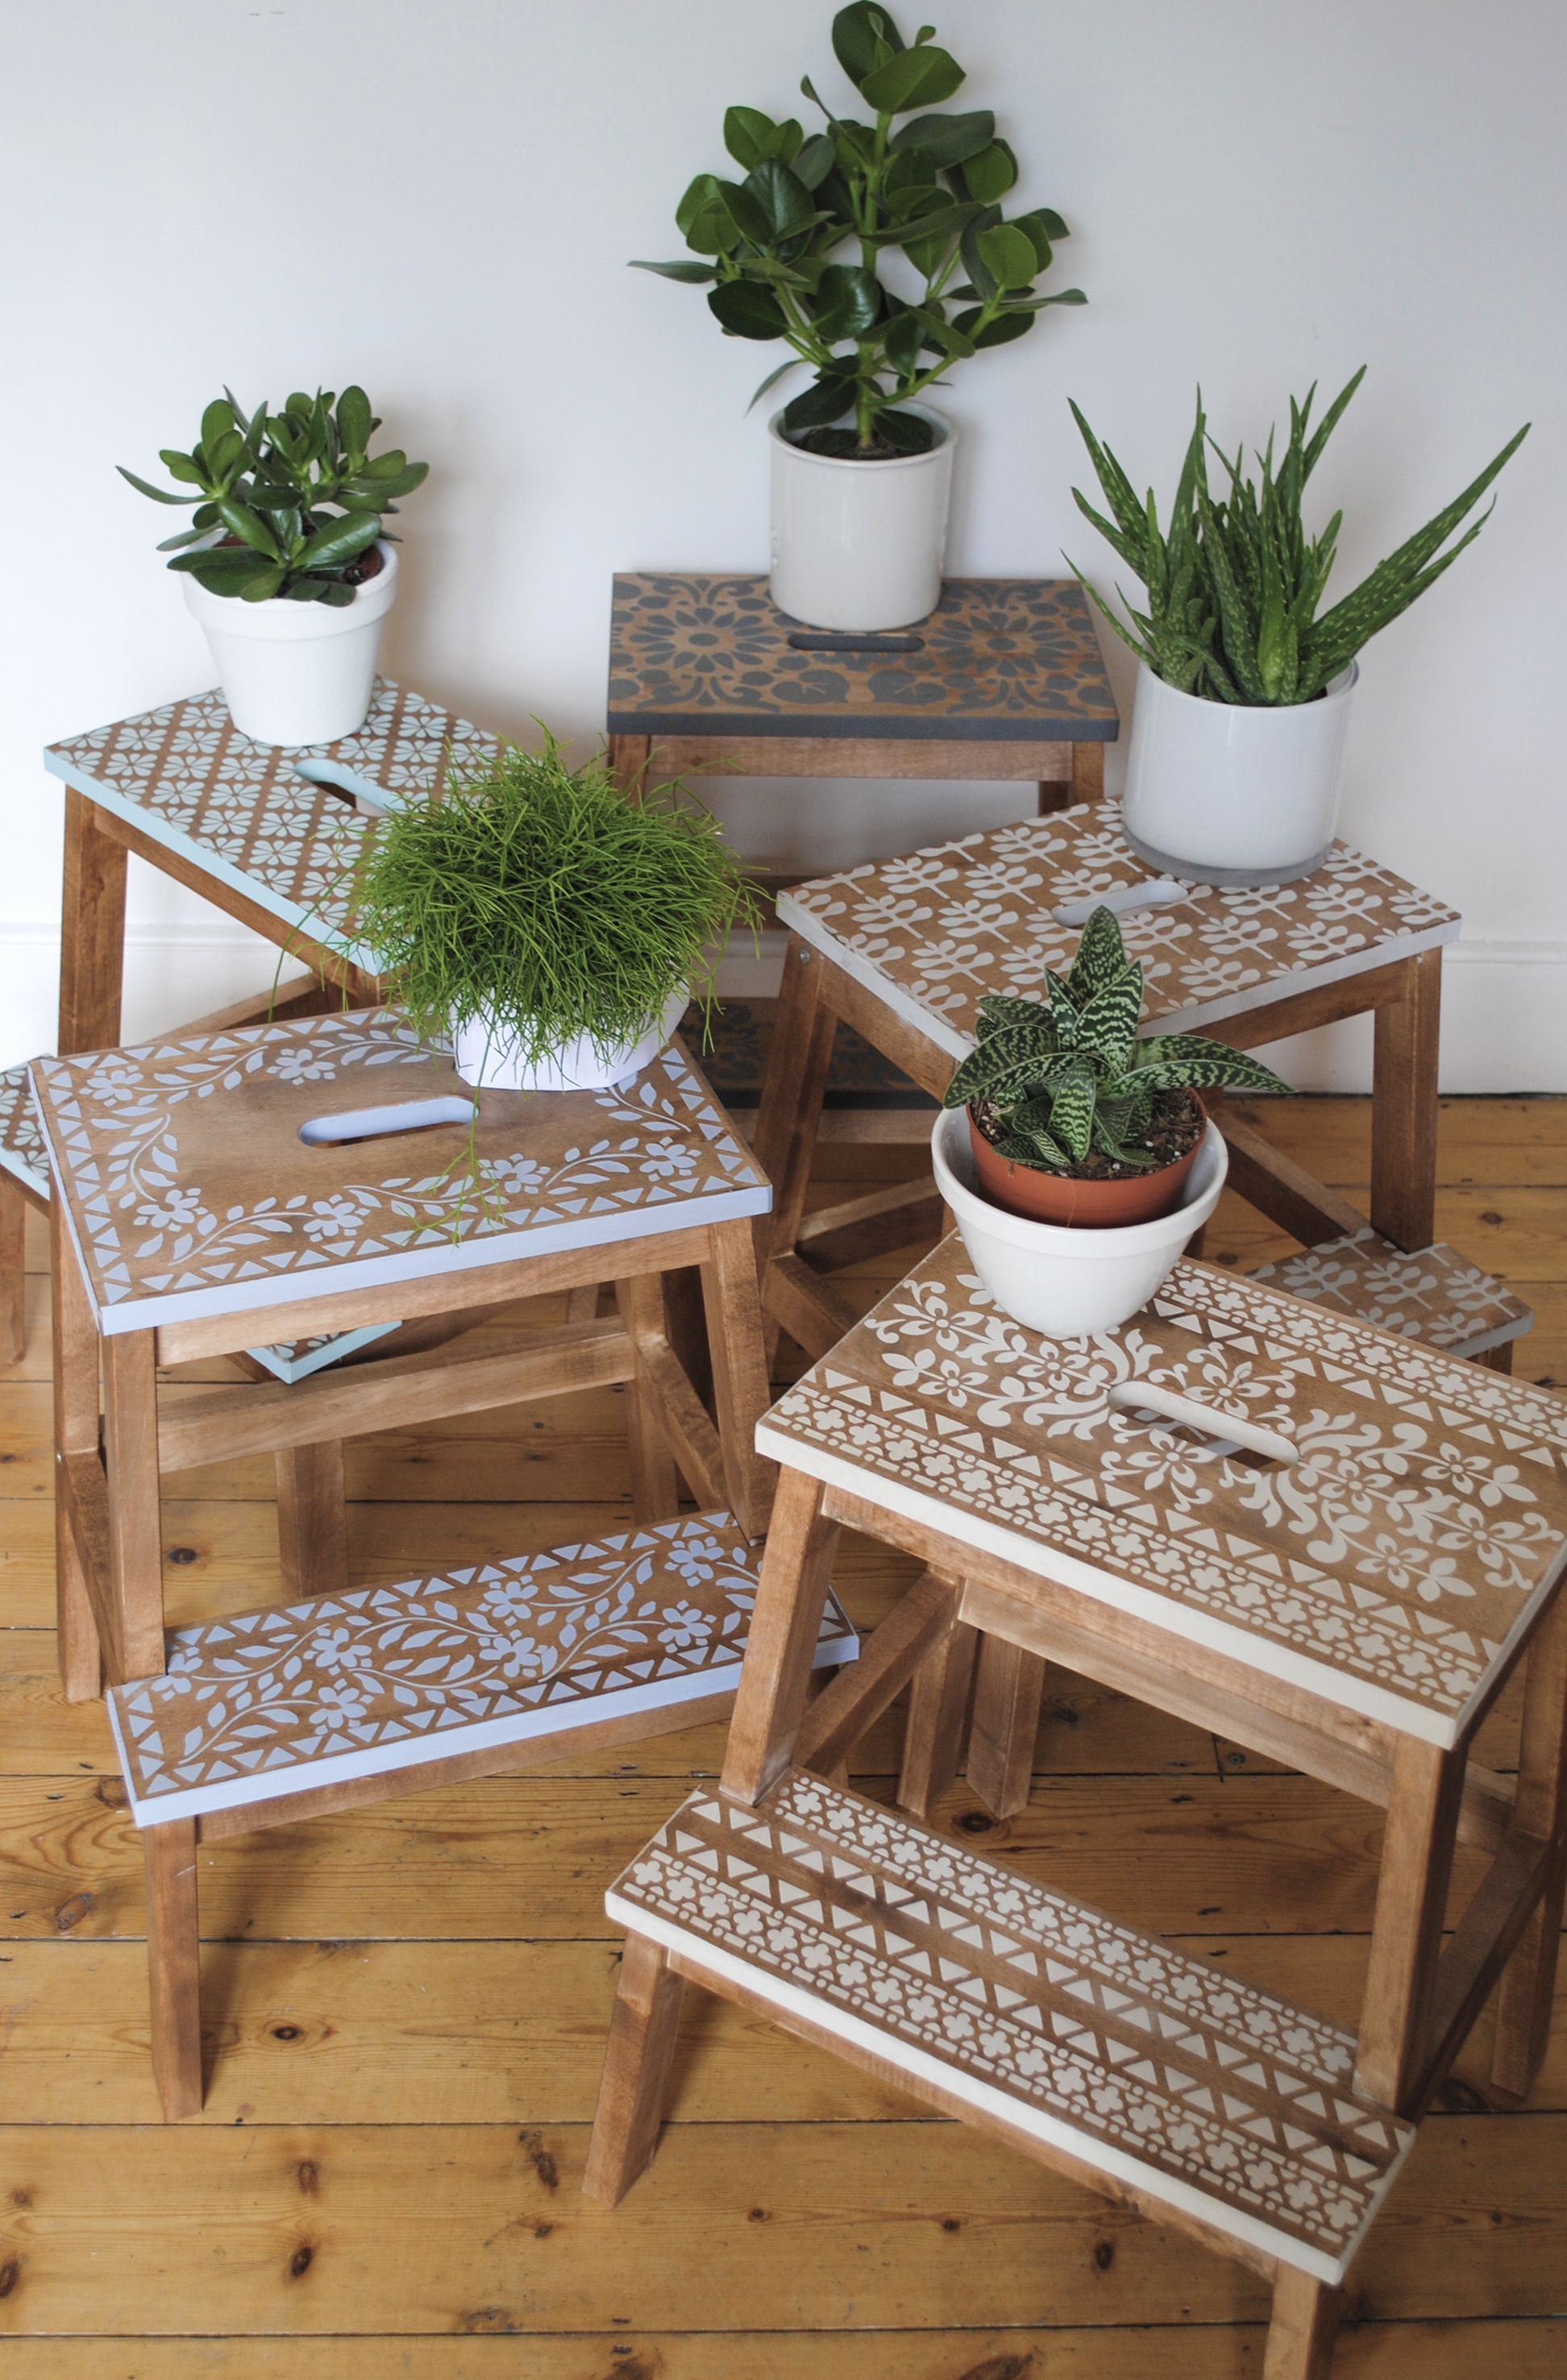 Stencilled step stools using Nicolette Tabram stencils and stencil paint. As seen in #Reloved magazine #Ikeahack #nicolettetabramstencils nicolettetabram.co.uk